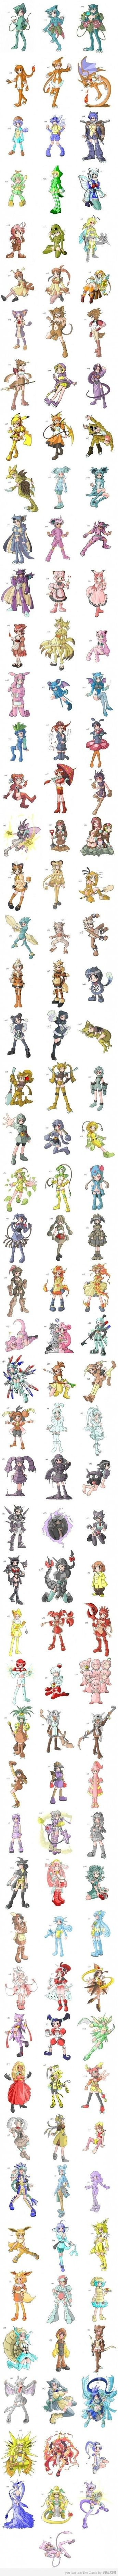 Pokemon original 150. Animé girls! Cute :)